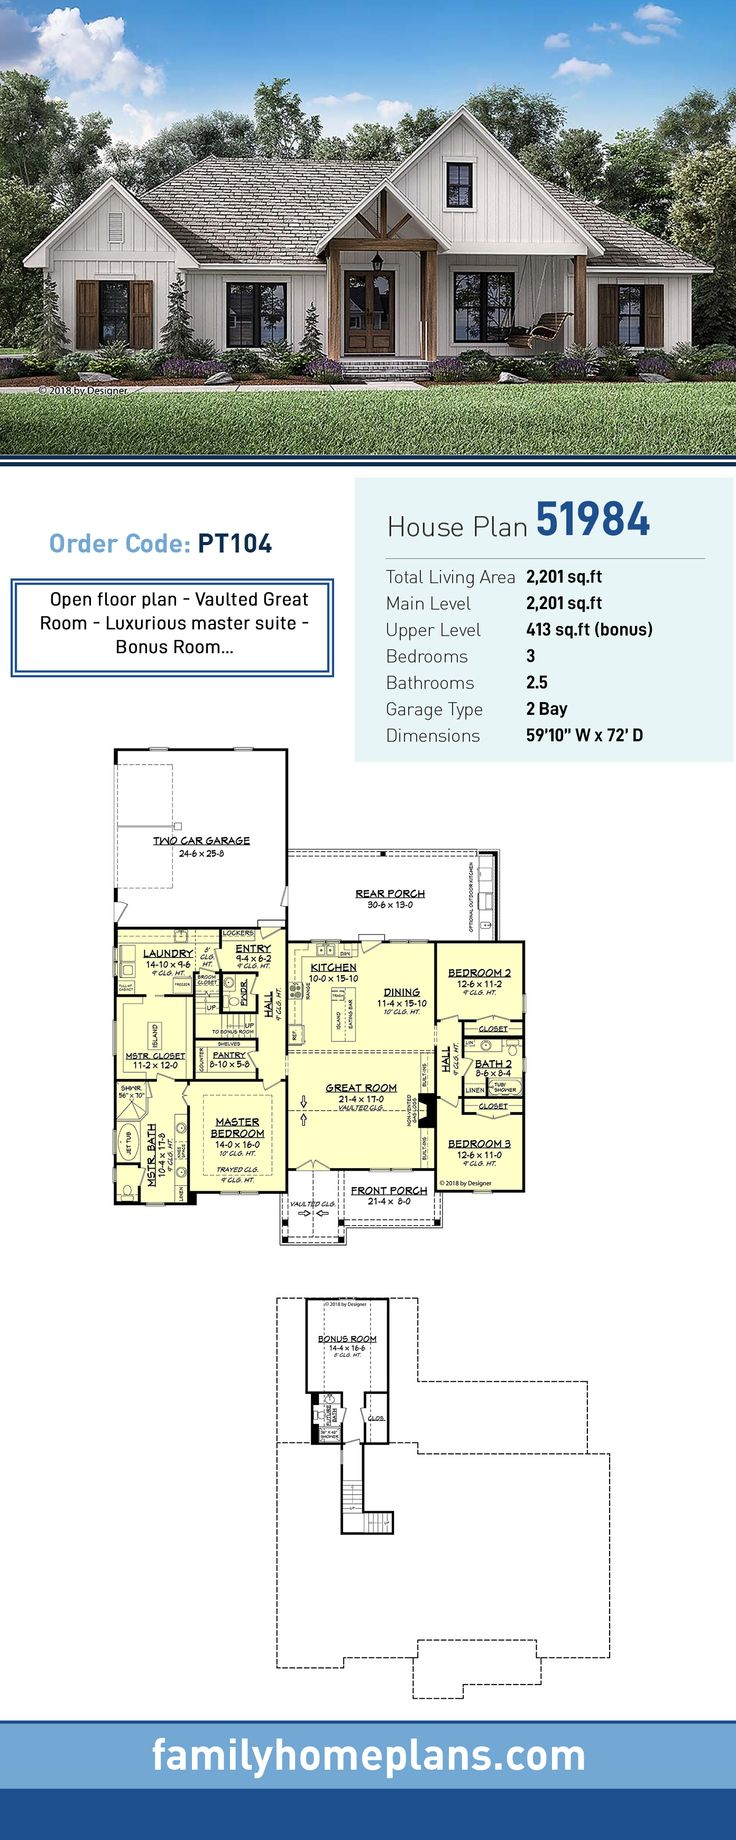 Southern Style House Plan Number 51984 with 3 Bed, 3 Bath, 2 Car Garage